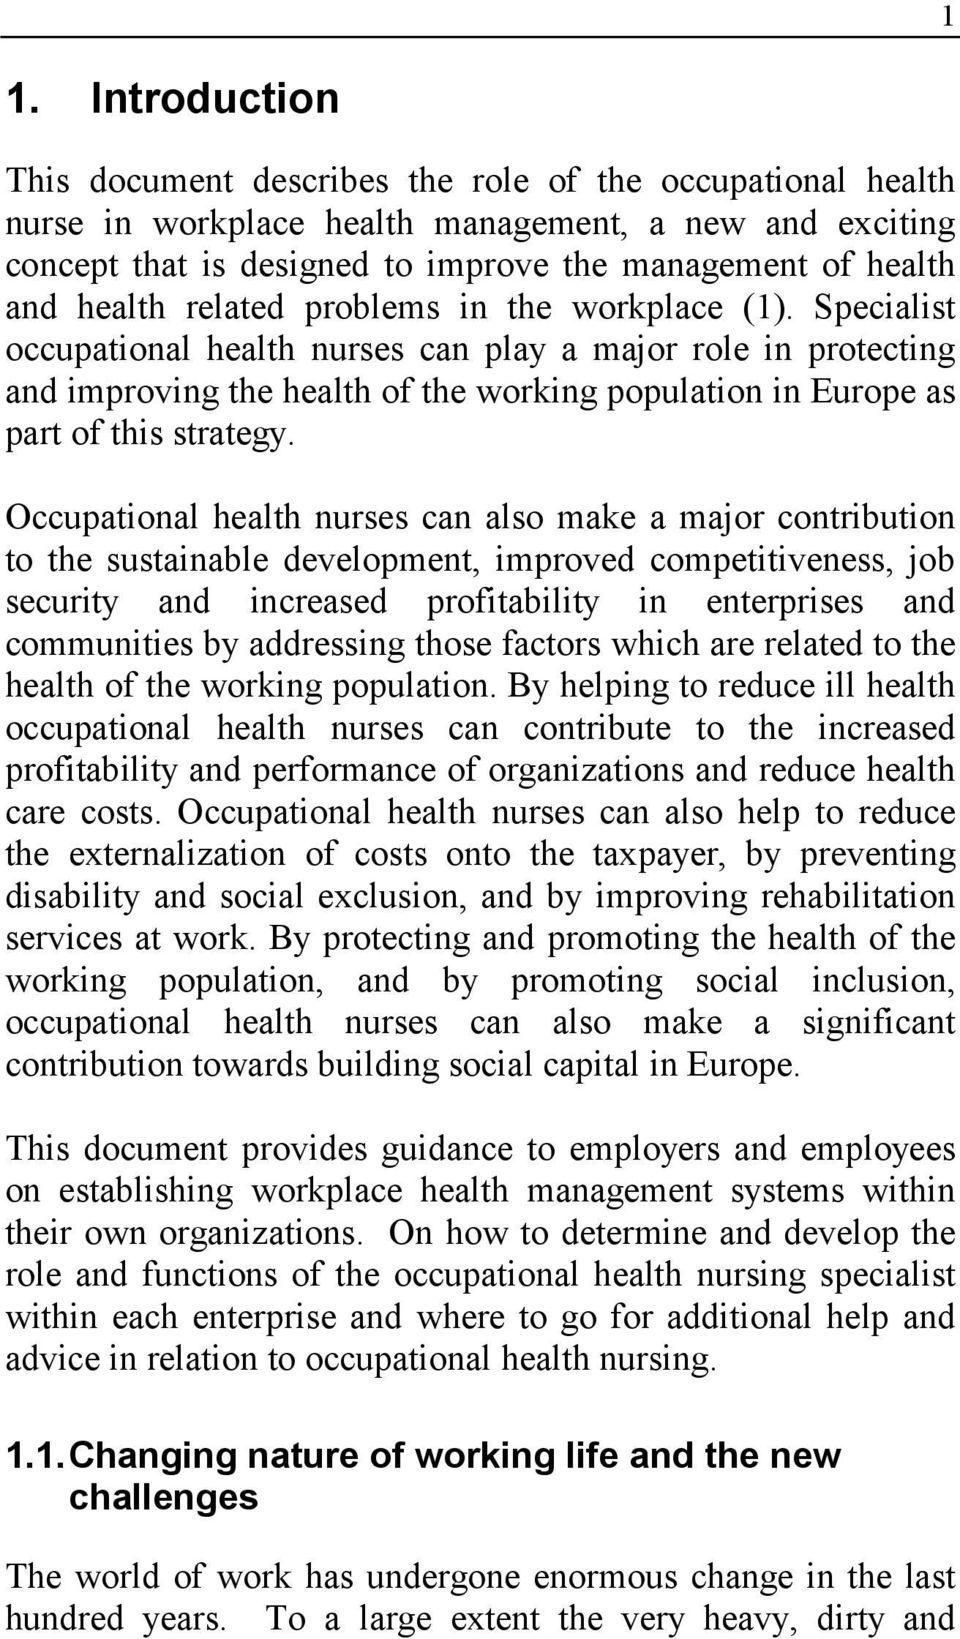 Specialist occupational health nurses can play a major role in protecting and improving the health of the working population in Europe as part of this strategy.